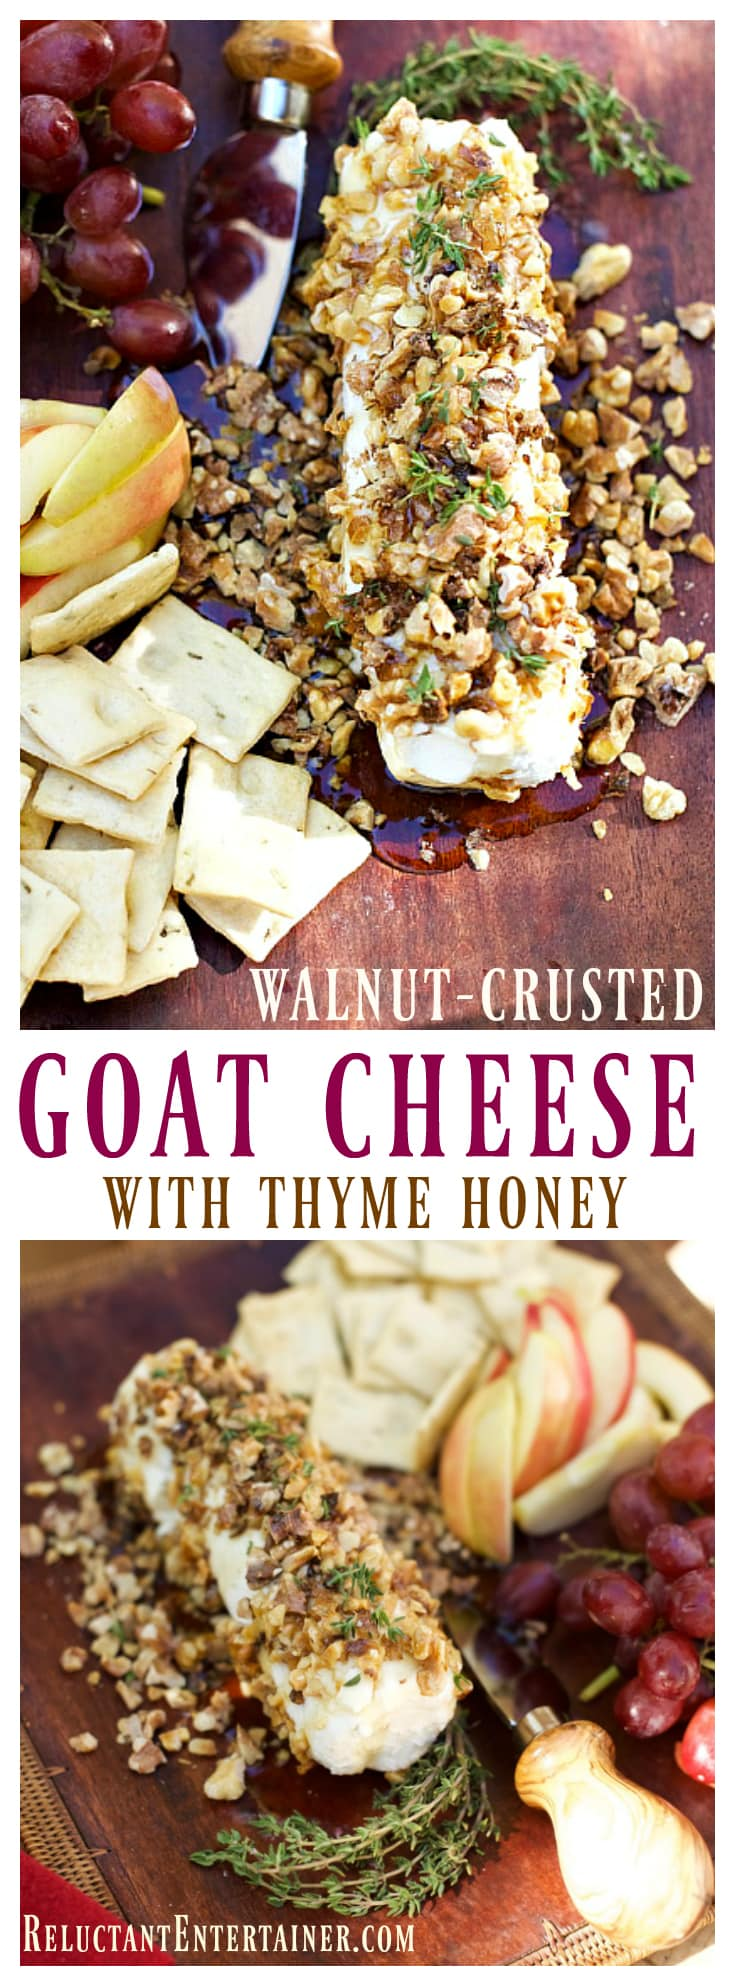 Walnut-Crusted Goat Cheese with Thyme Honey is an elegant appetizer to serve at any dinner party, along with your favorite crackers and grapes